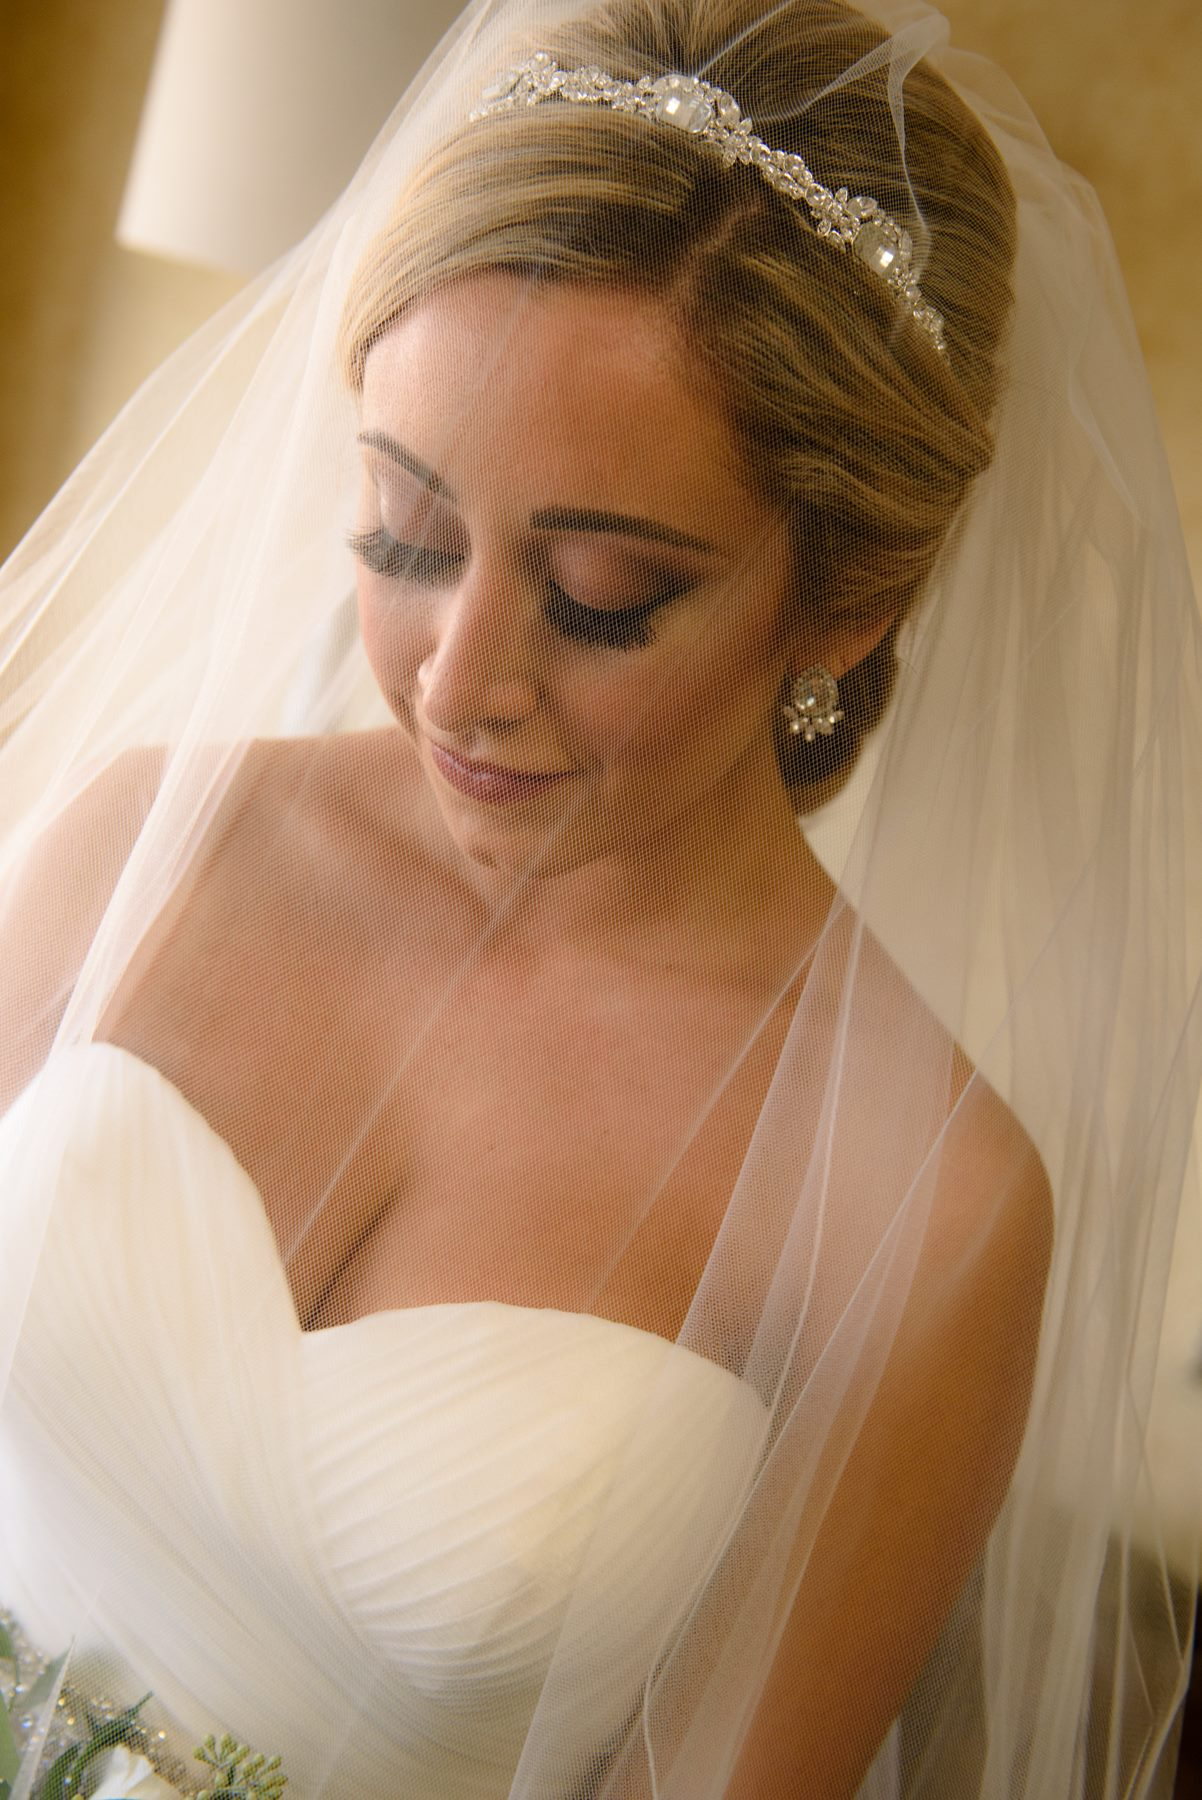 close-up-bride-with-veil.jpg